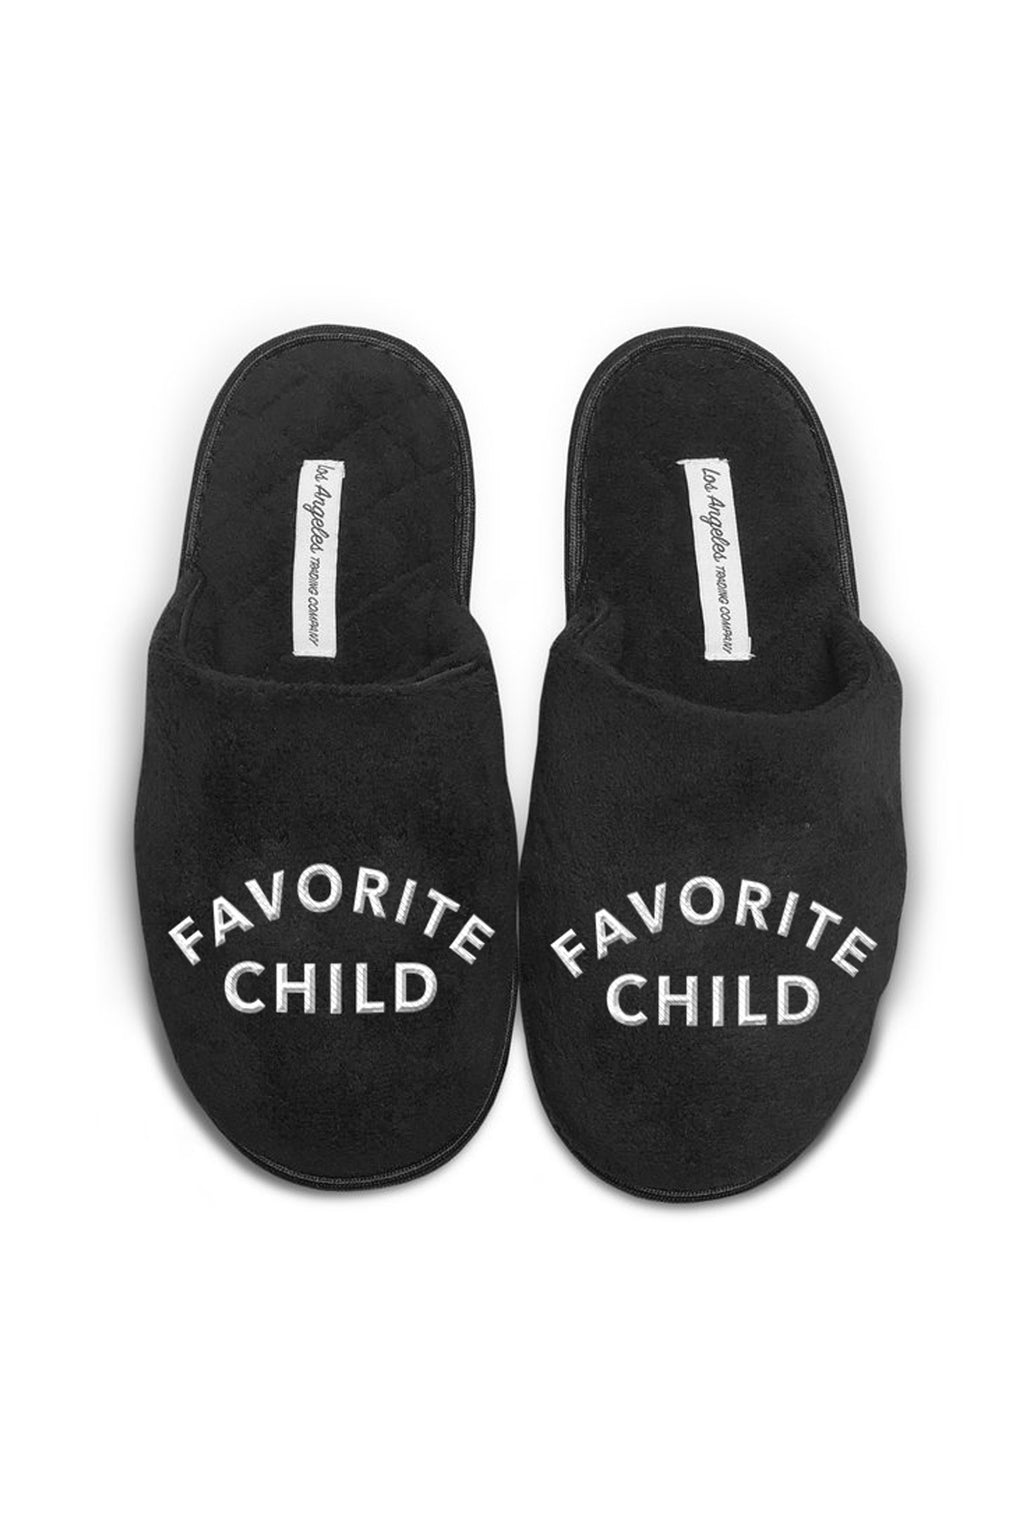 Unisex Black Slippers - Favorite Child